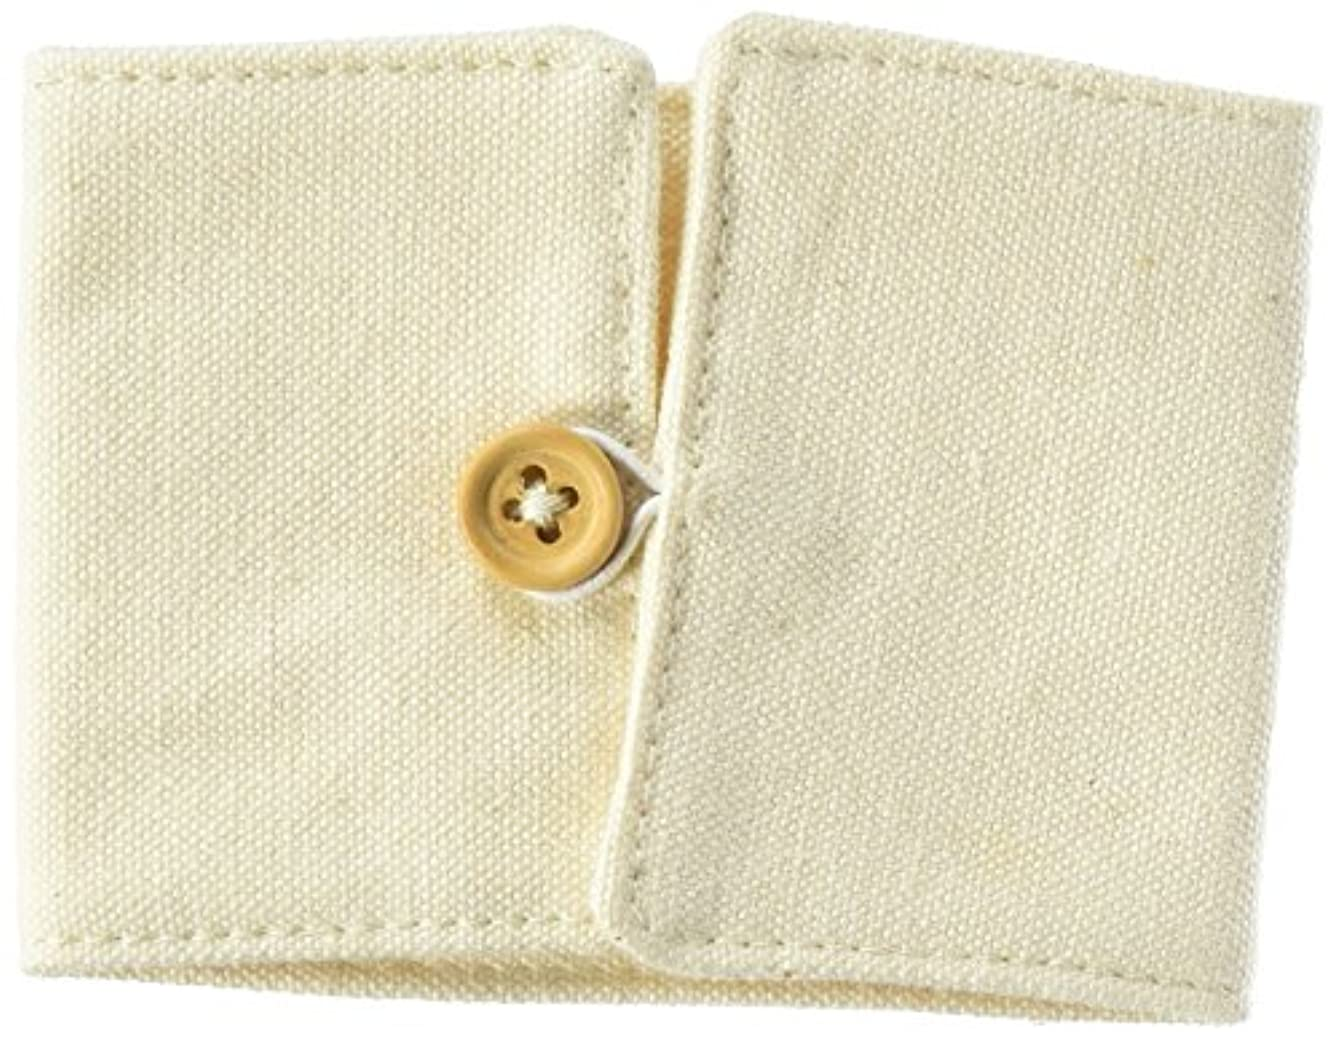 Maya Road Alterable Canvas Cuff with Elastic Loop & Button-7.1